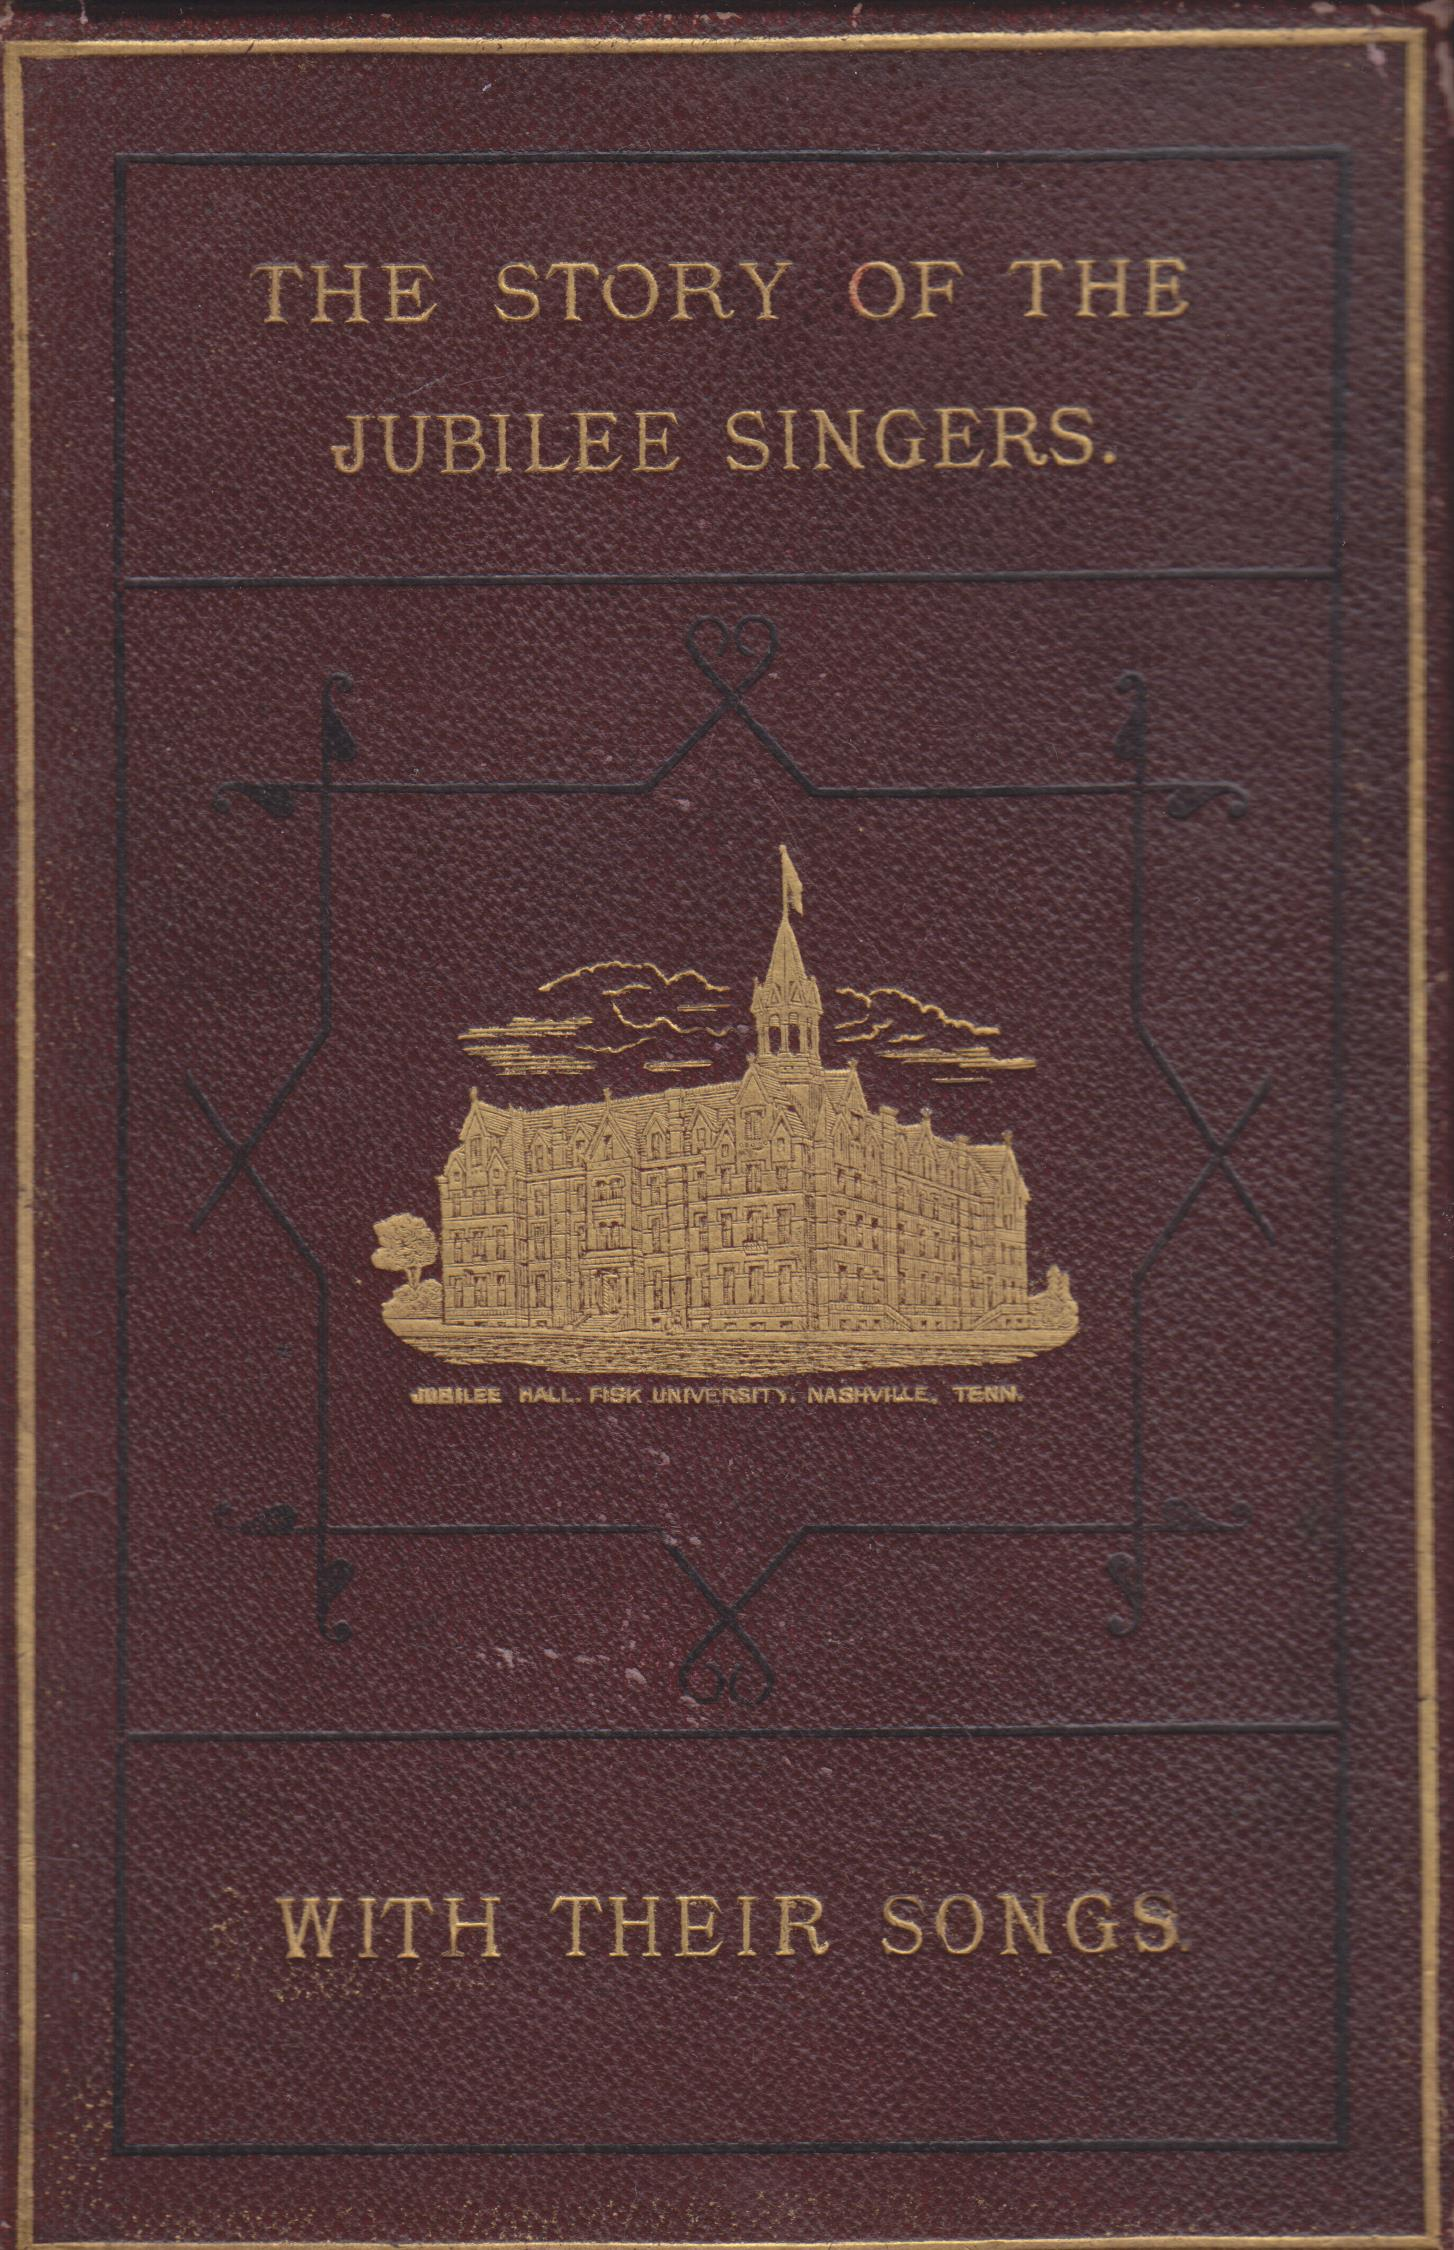 Image for The Story of the Jubilee Singers with Their Songs